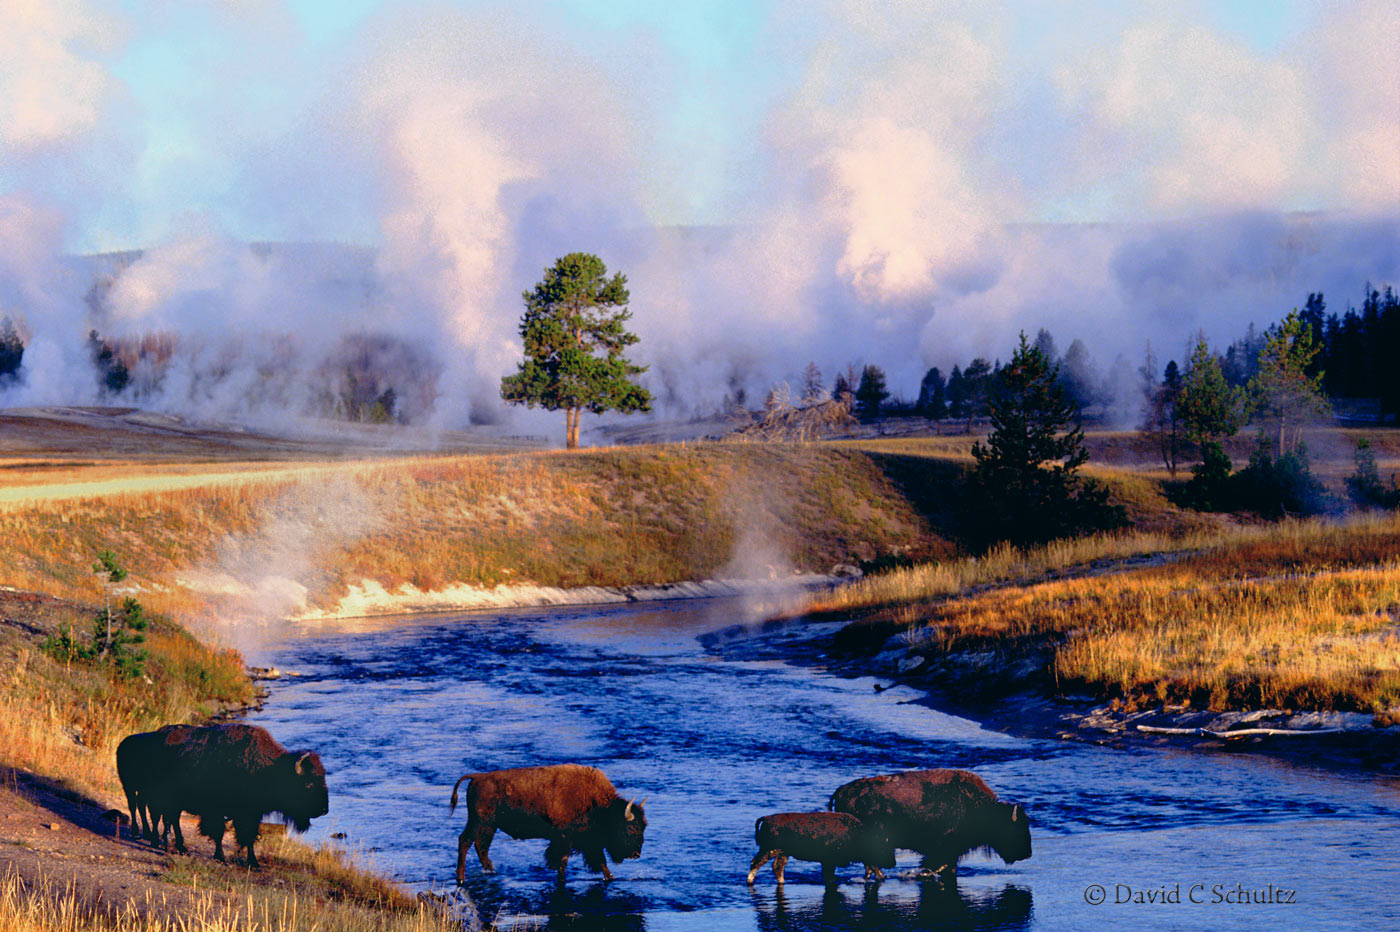 Bison in Yellowstone National Park - Image #106-170